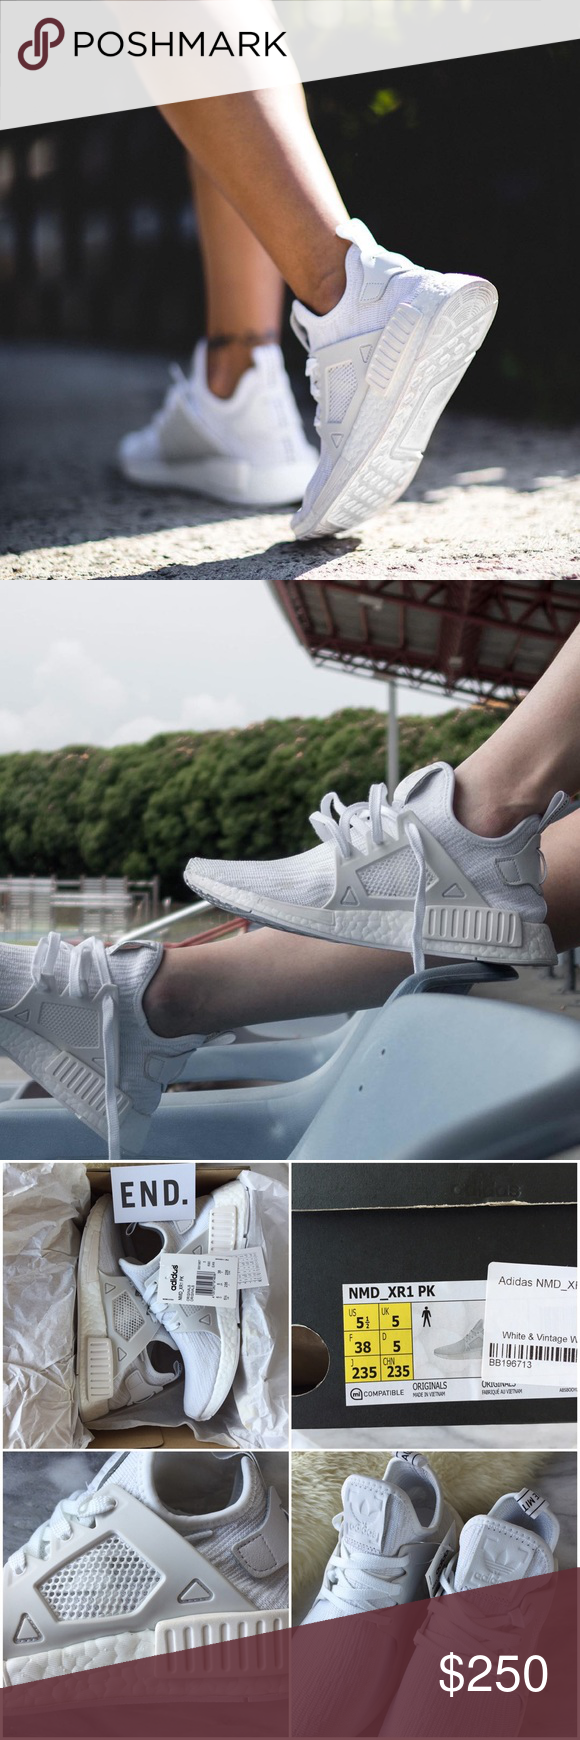 8a5dd3b7e6d72 Adidas Triple White NMD XR1 Sneakers •Triple white NMD XR1 Sneakers. •Men s  size